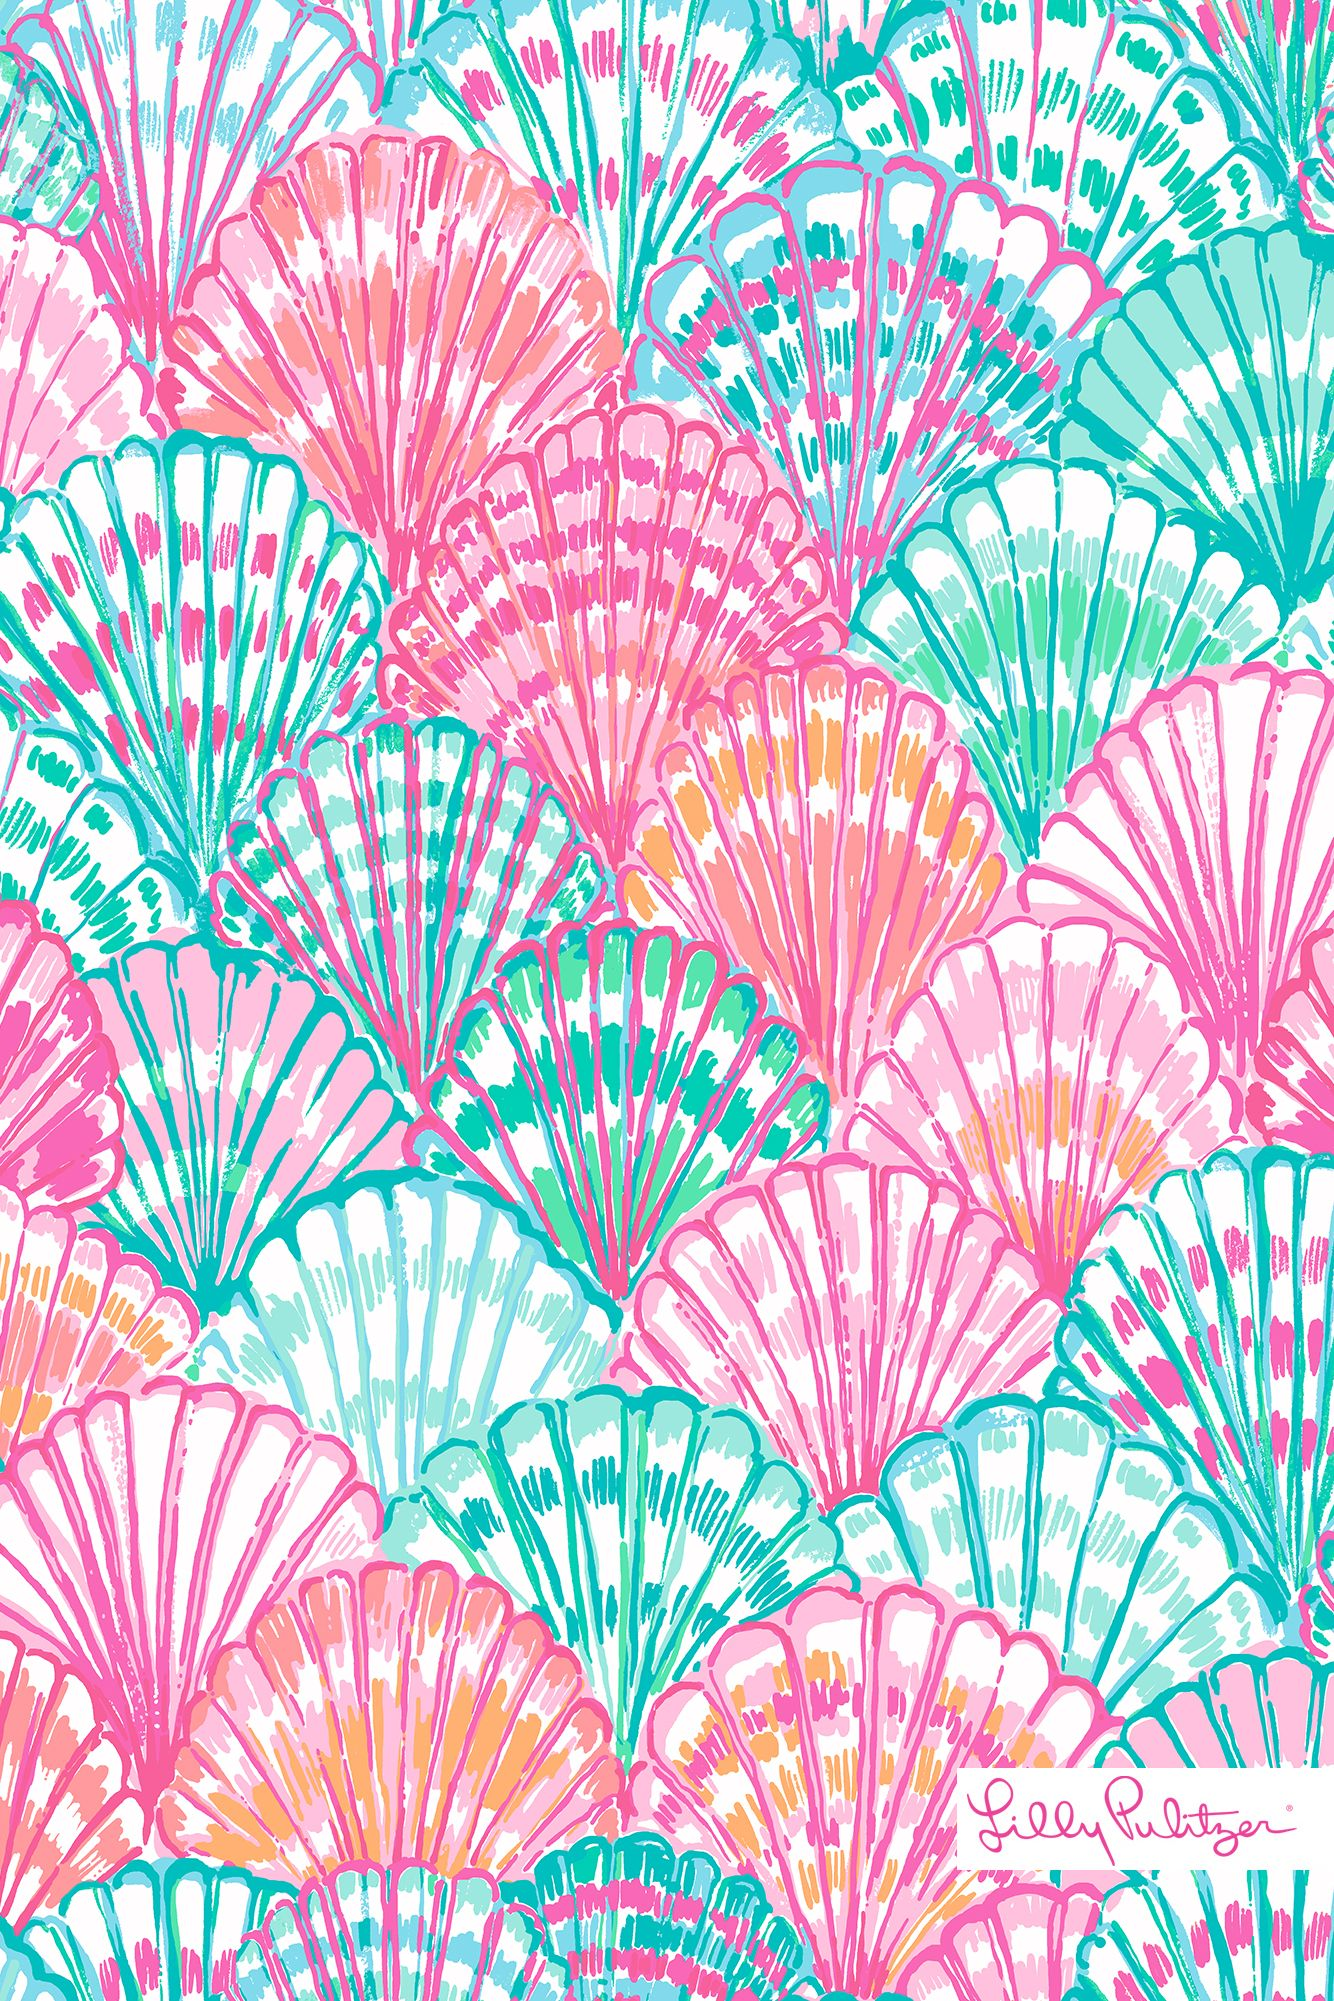 Lilly Pulitzer Patterns Lilly Pulitzer Oh Shello Mobile Wallpaper Wallpapers Pinterest